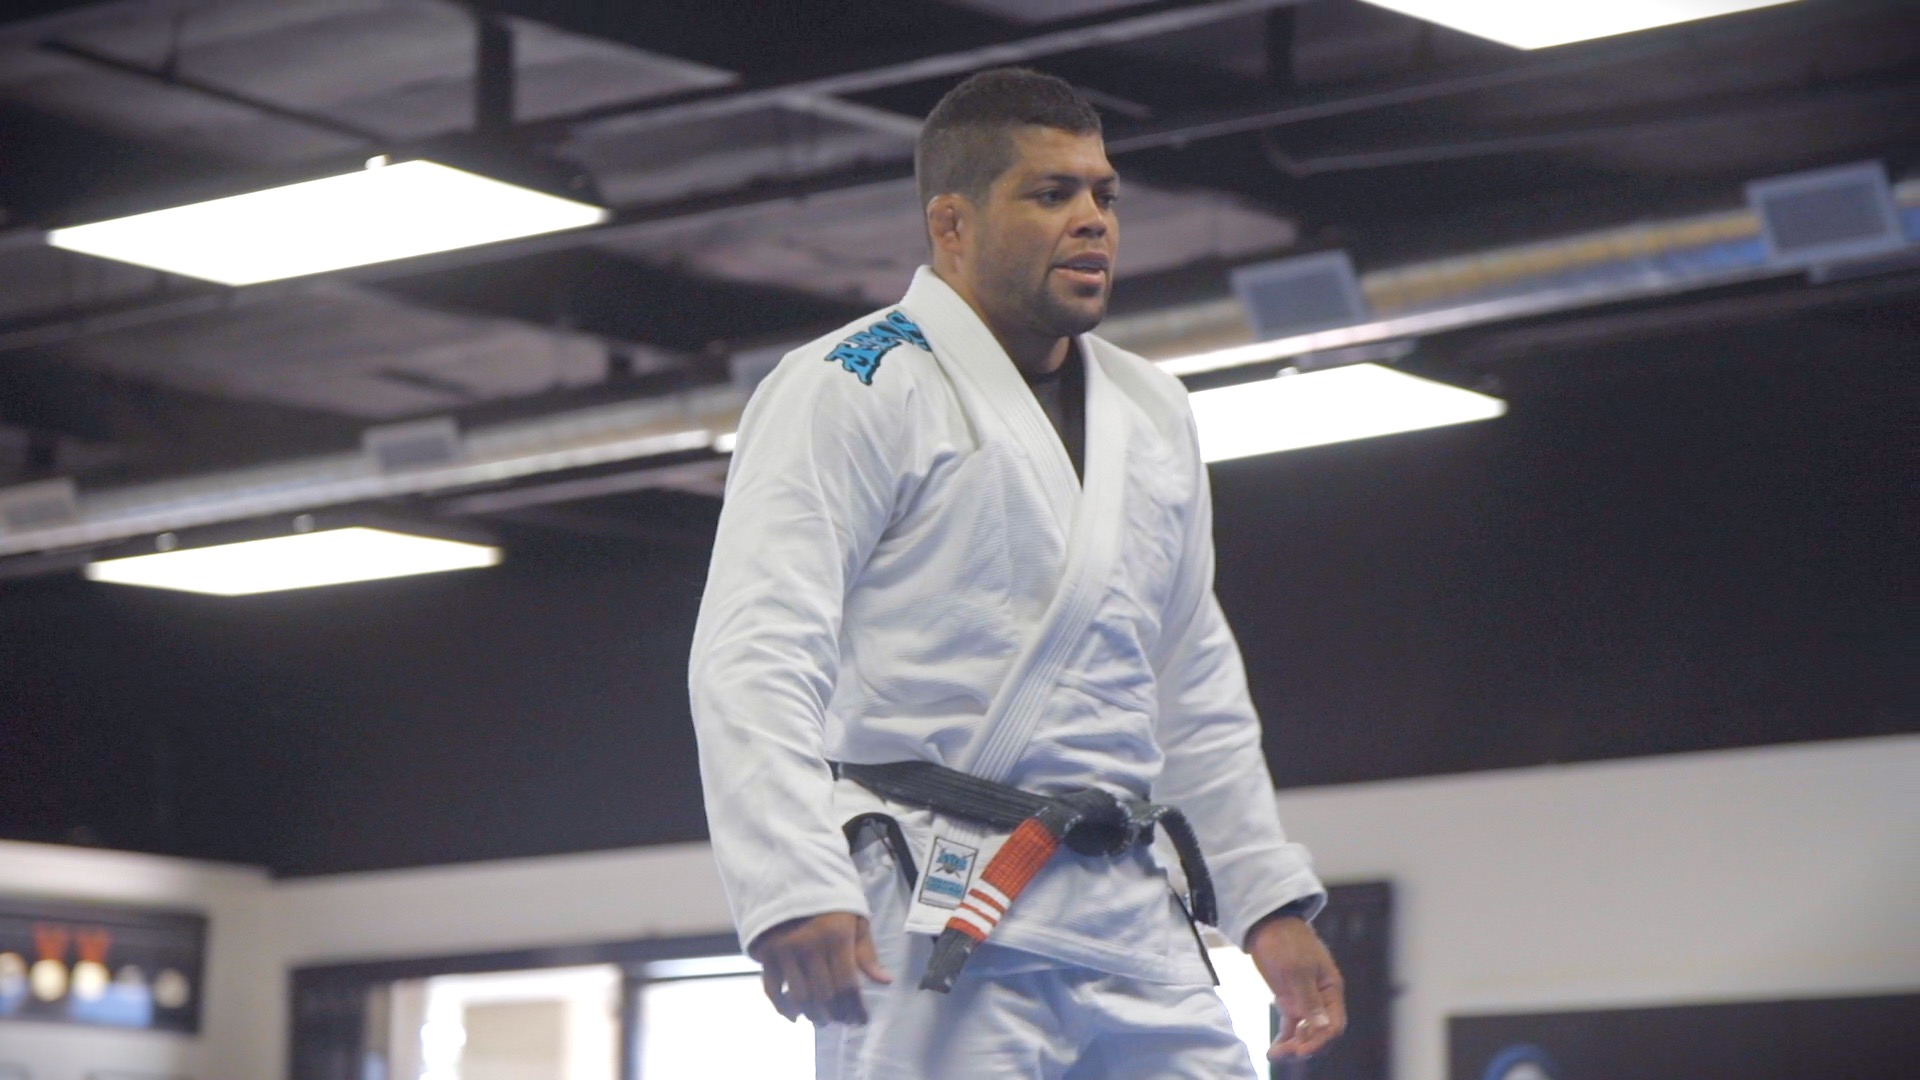 IBJJF Pans 2016 Preview: Who's In, Who's Out? | FloGrappling